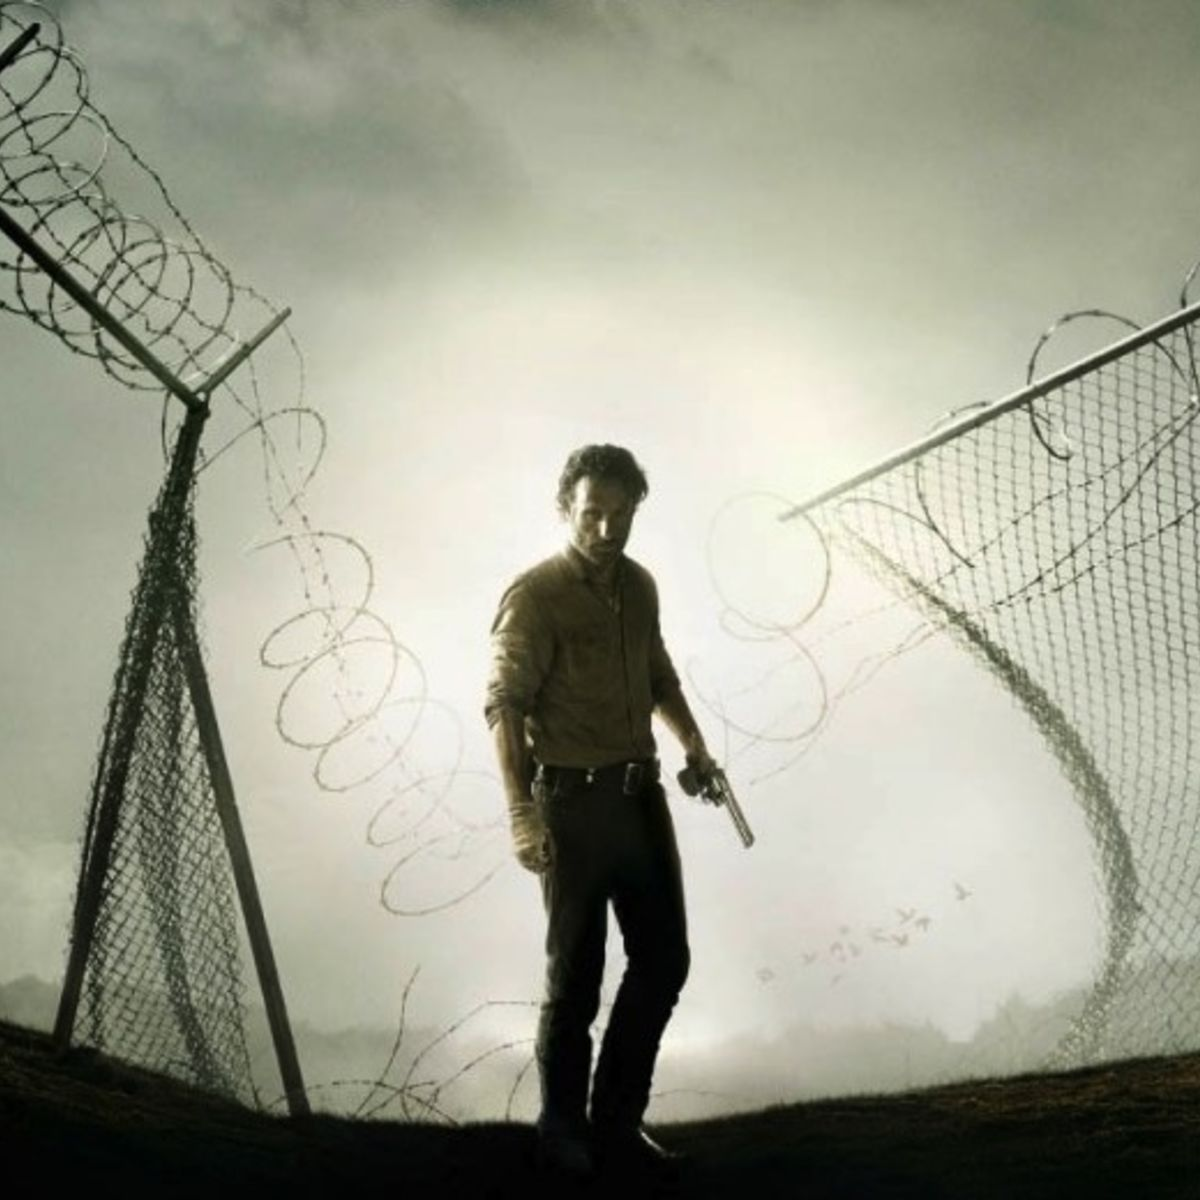 TWD-S4-Key-Art-1280x965-1024x772.jpg